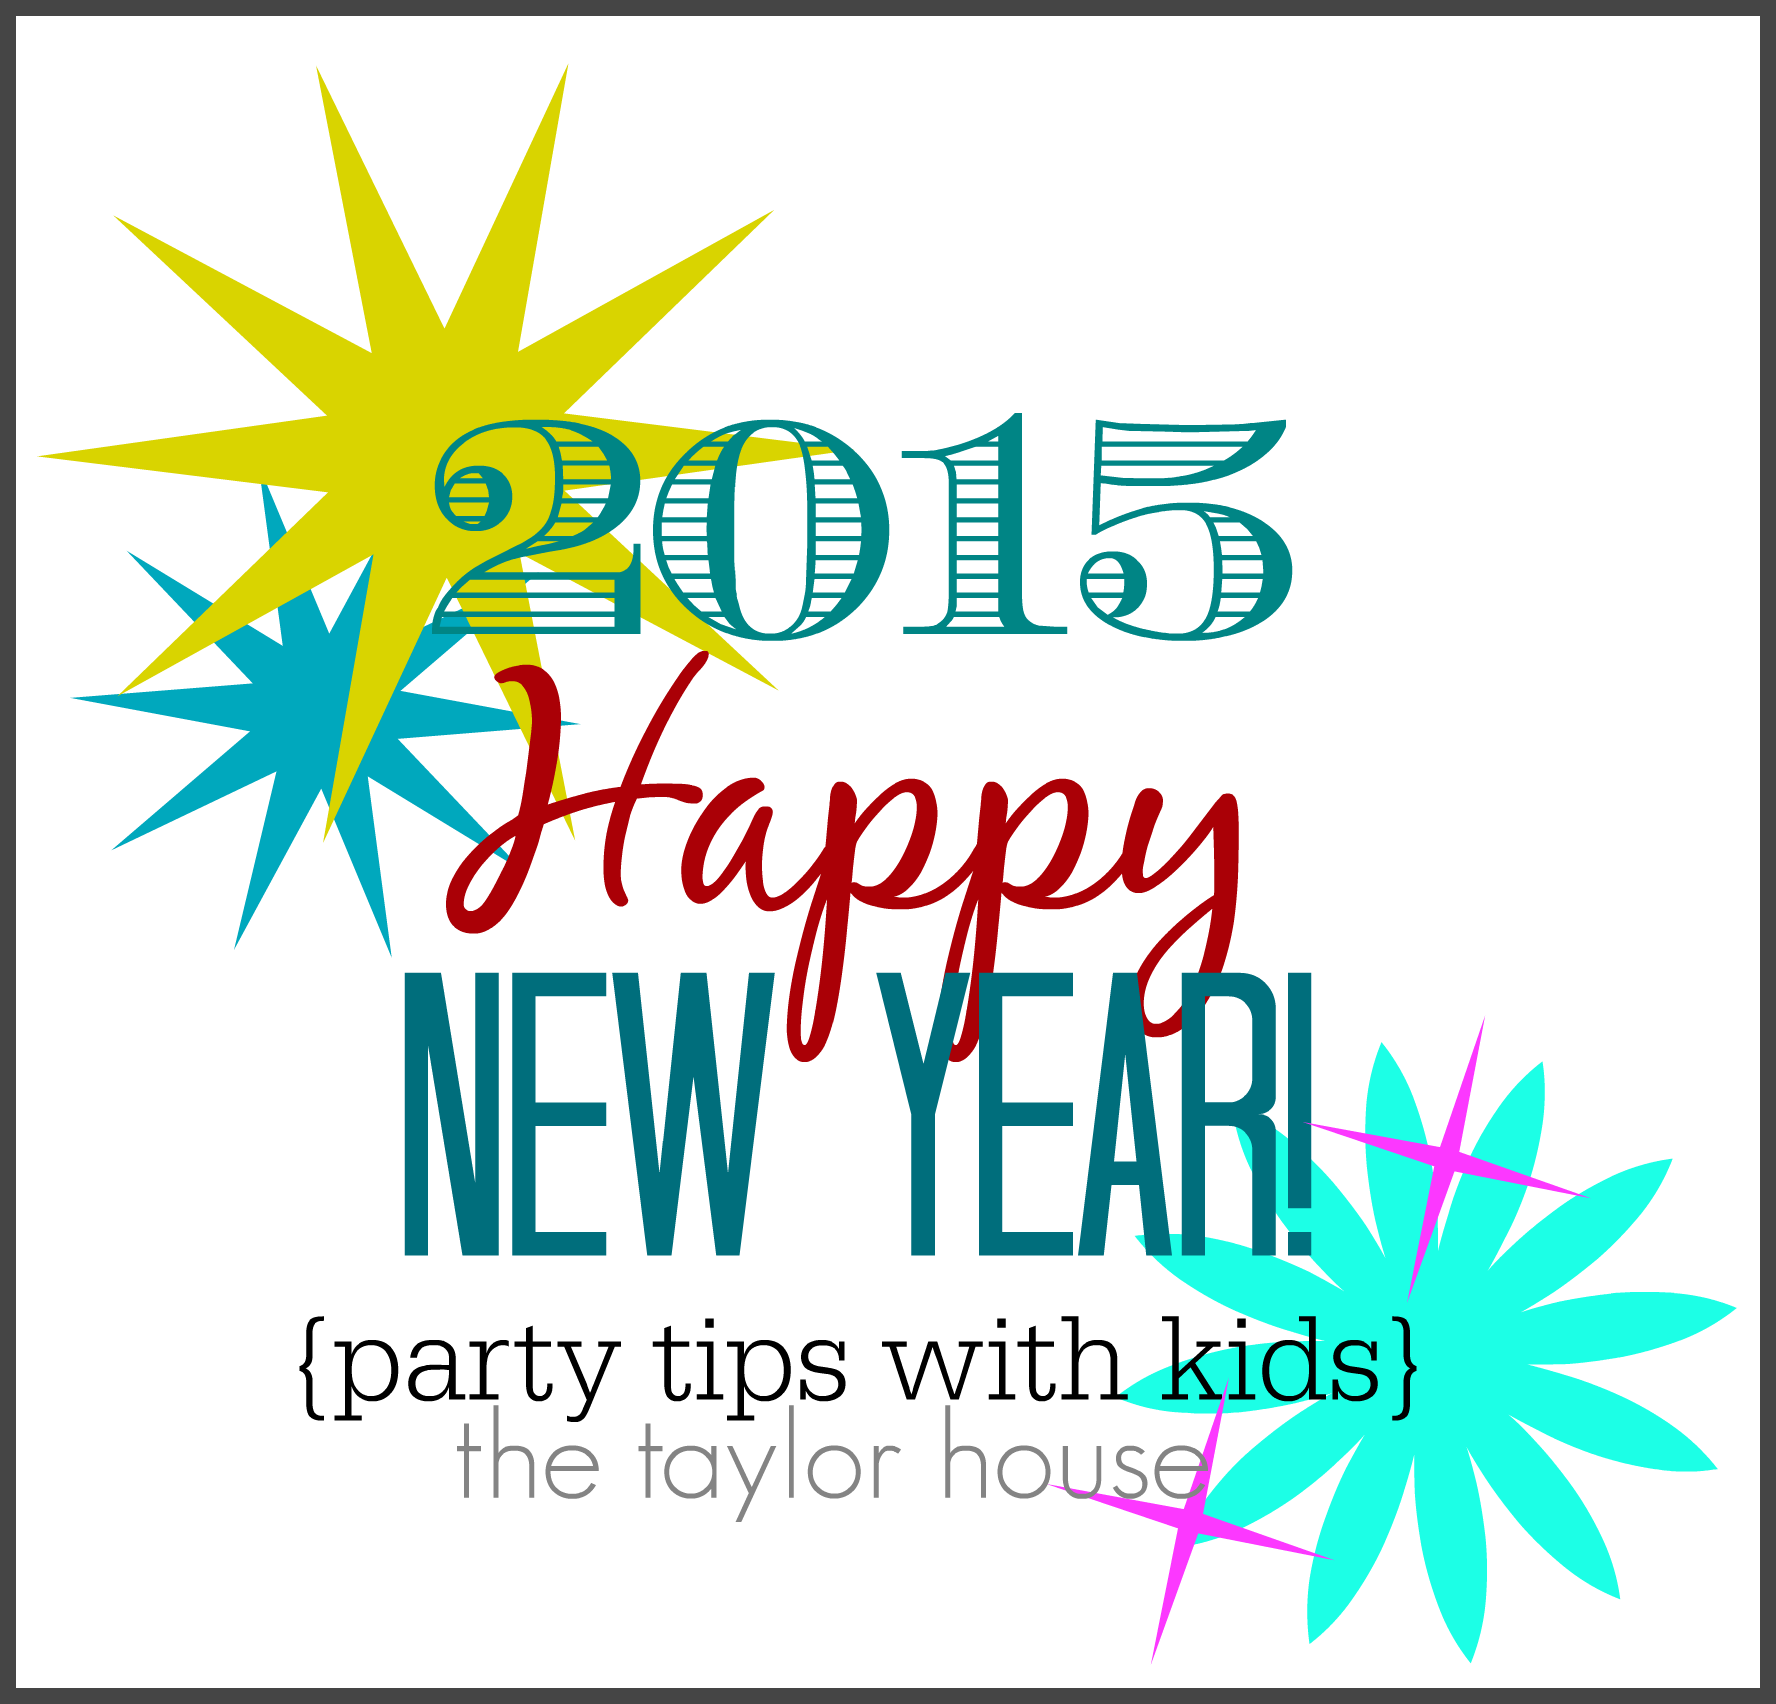 1776x1704 New Years Eve Party Ideas {With Kids} The Taylor House